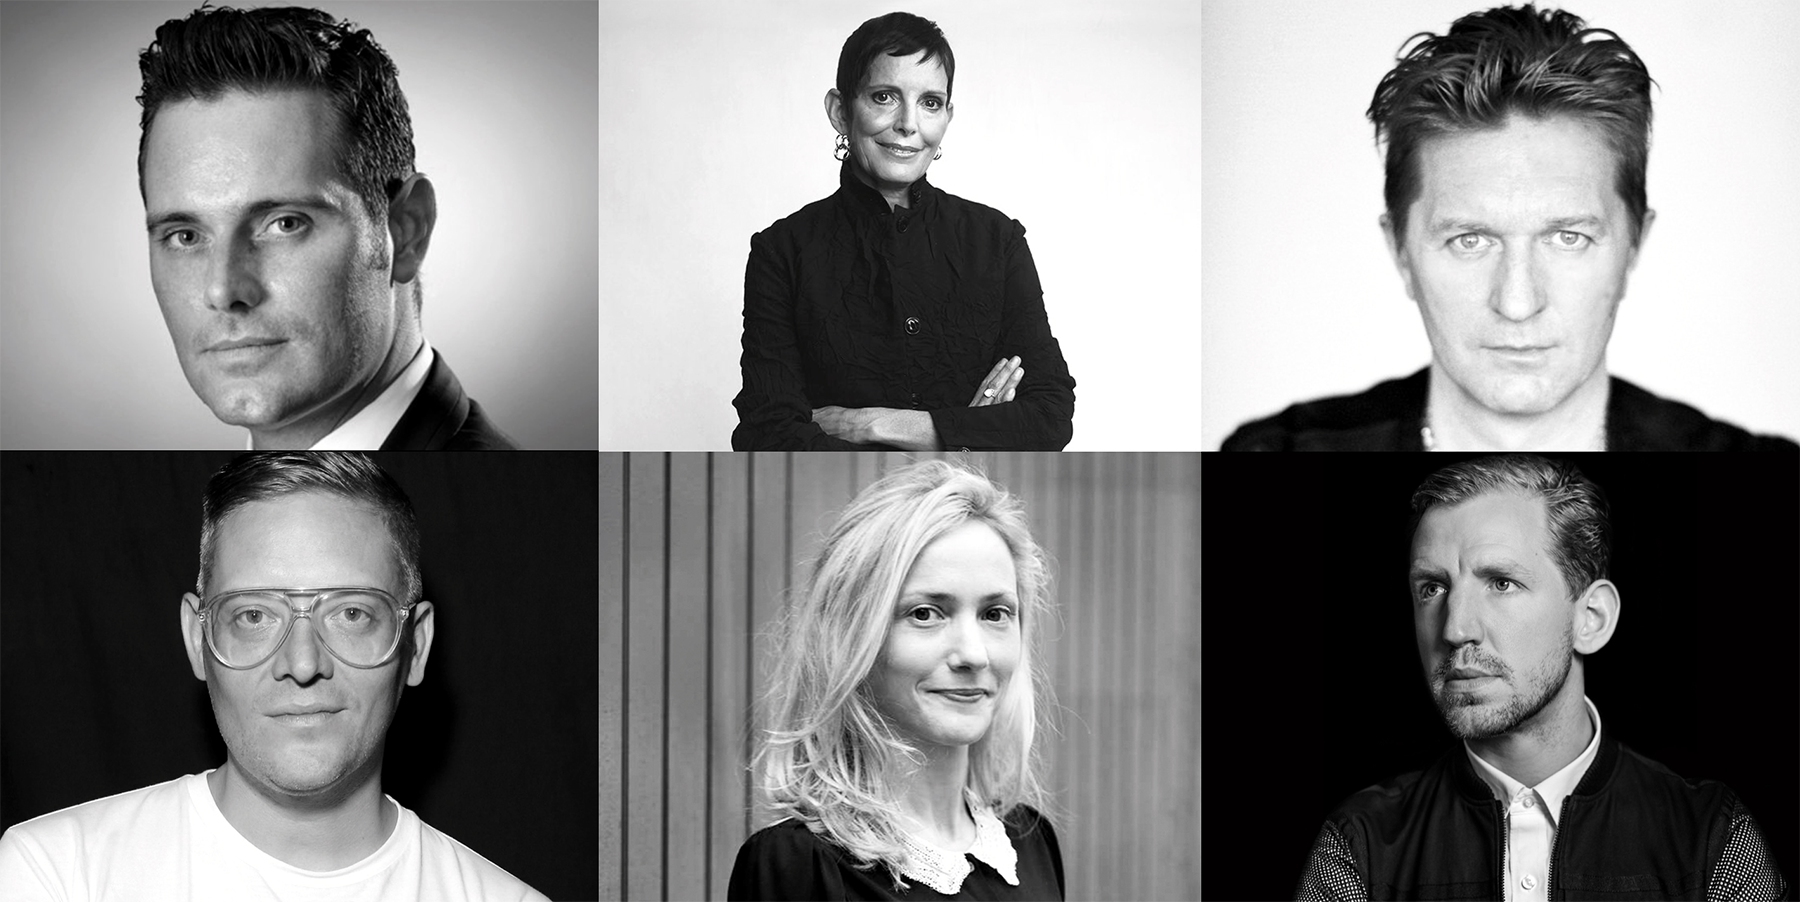 ashion Industry HR Moves Maureen Chiquet Joins Matches, Giles Deacon to Aspinal, Keanan Duffty to Parsons